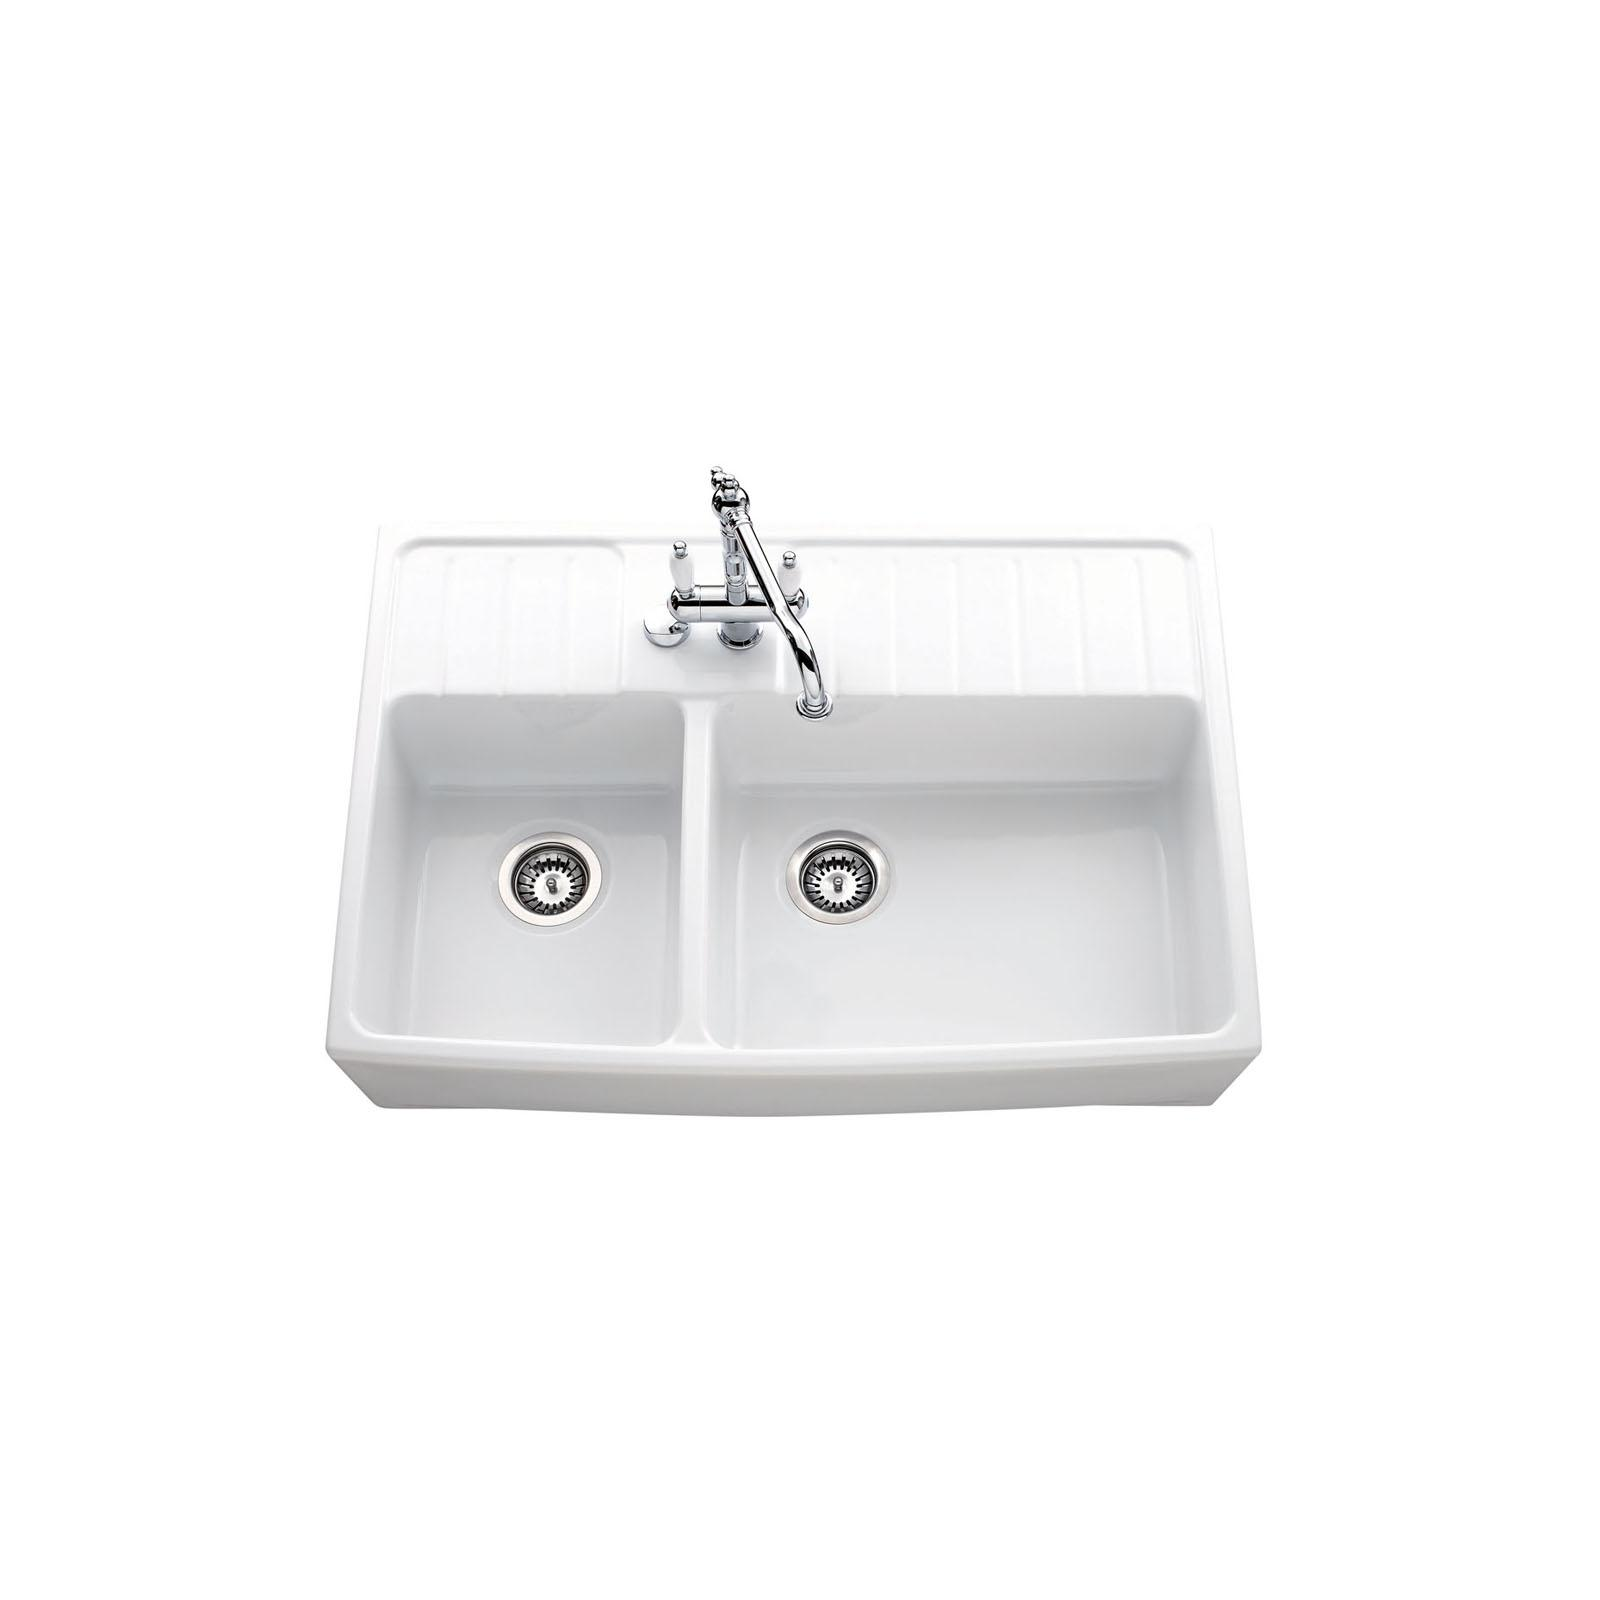 High-quality sink Clotaire III - one and a half bowl, ceramic - ambience 3